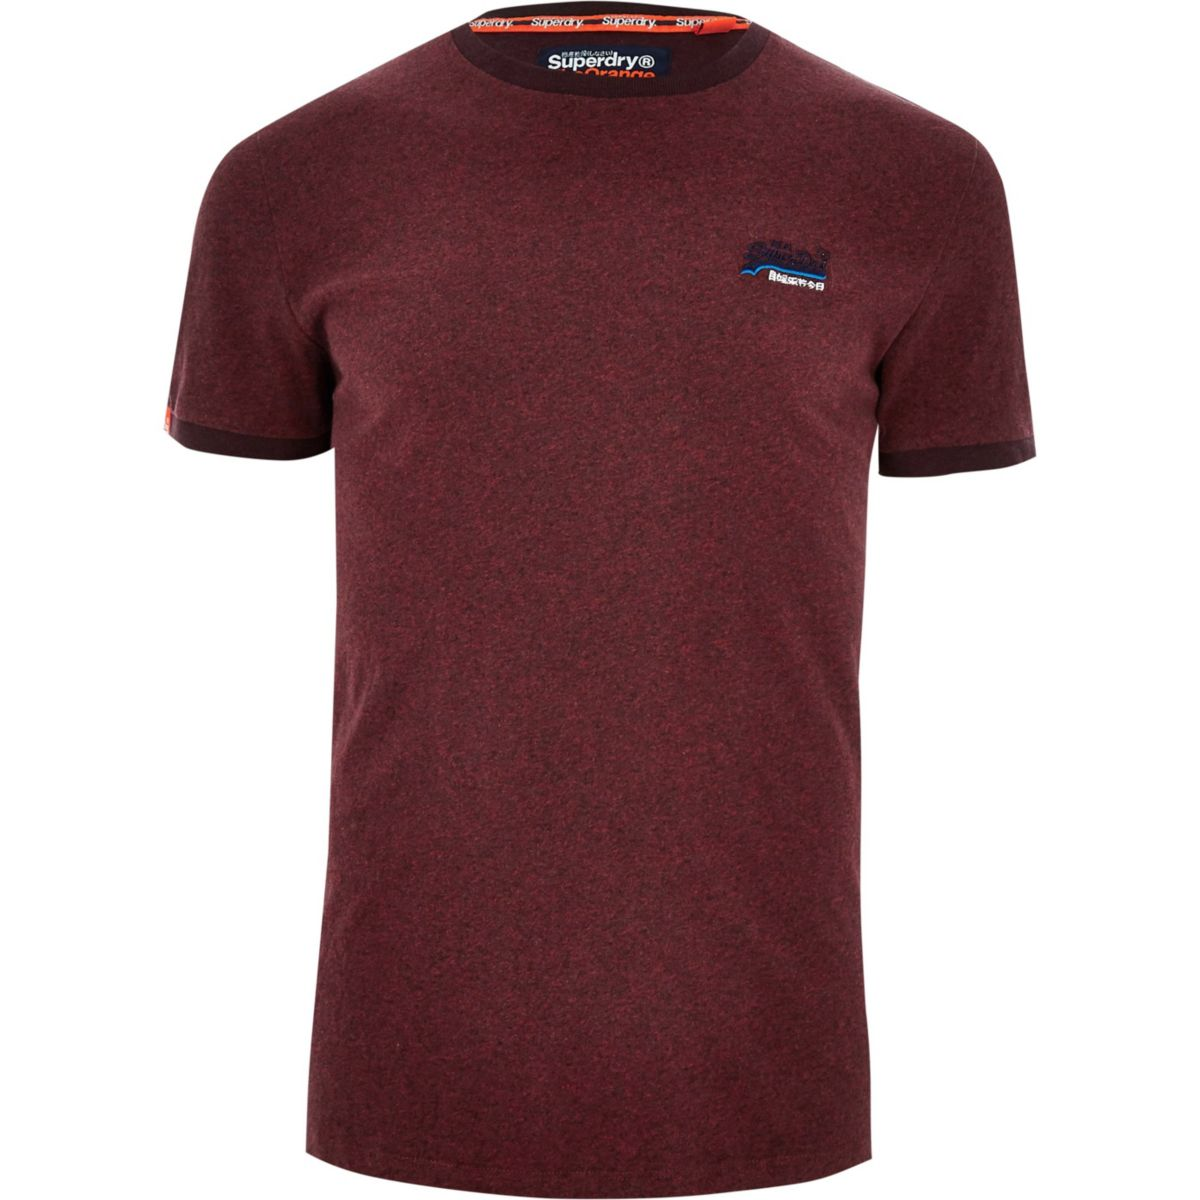 shirt crew burgundy Superdry neck T SZwn8